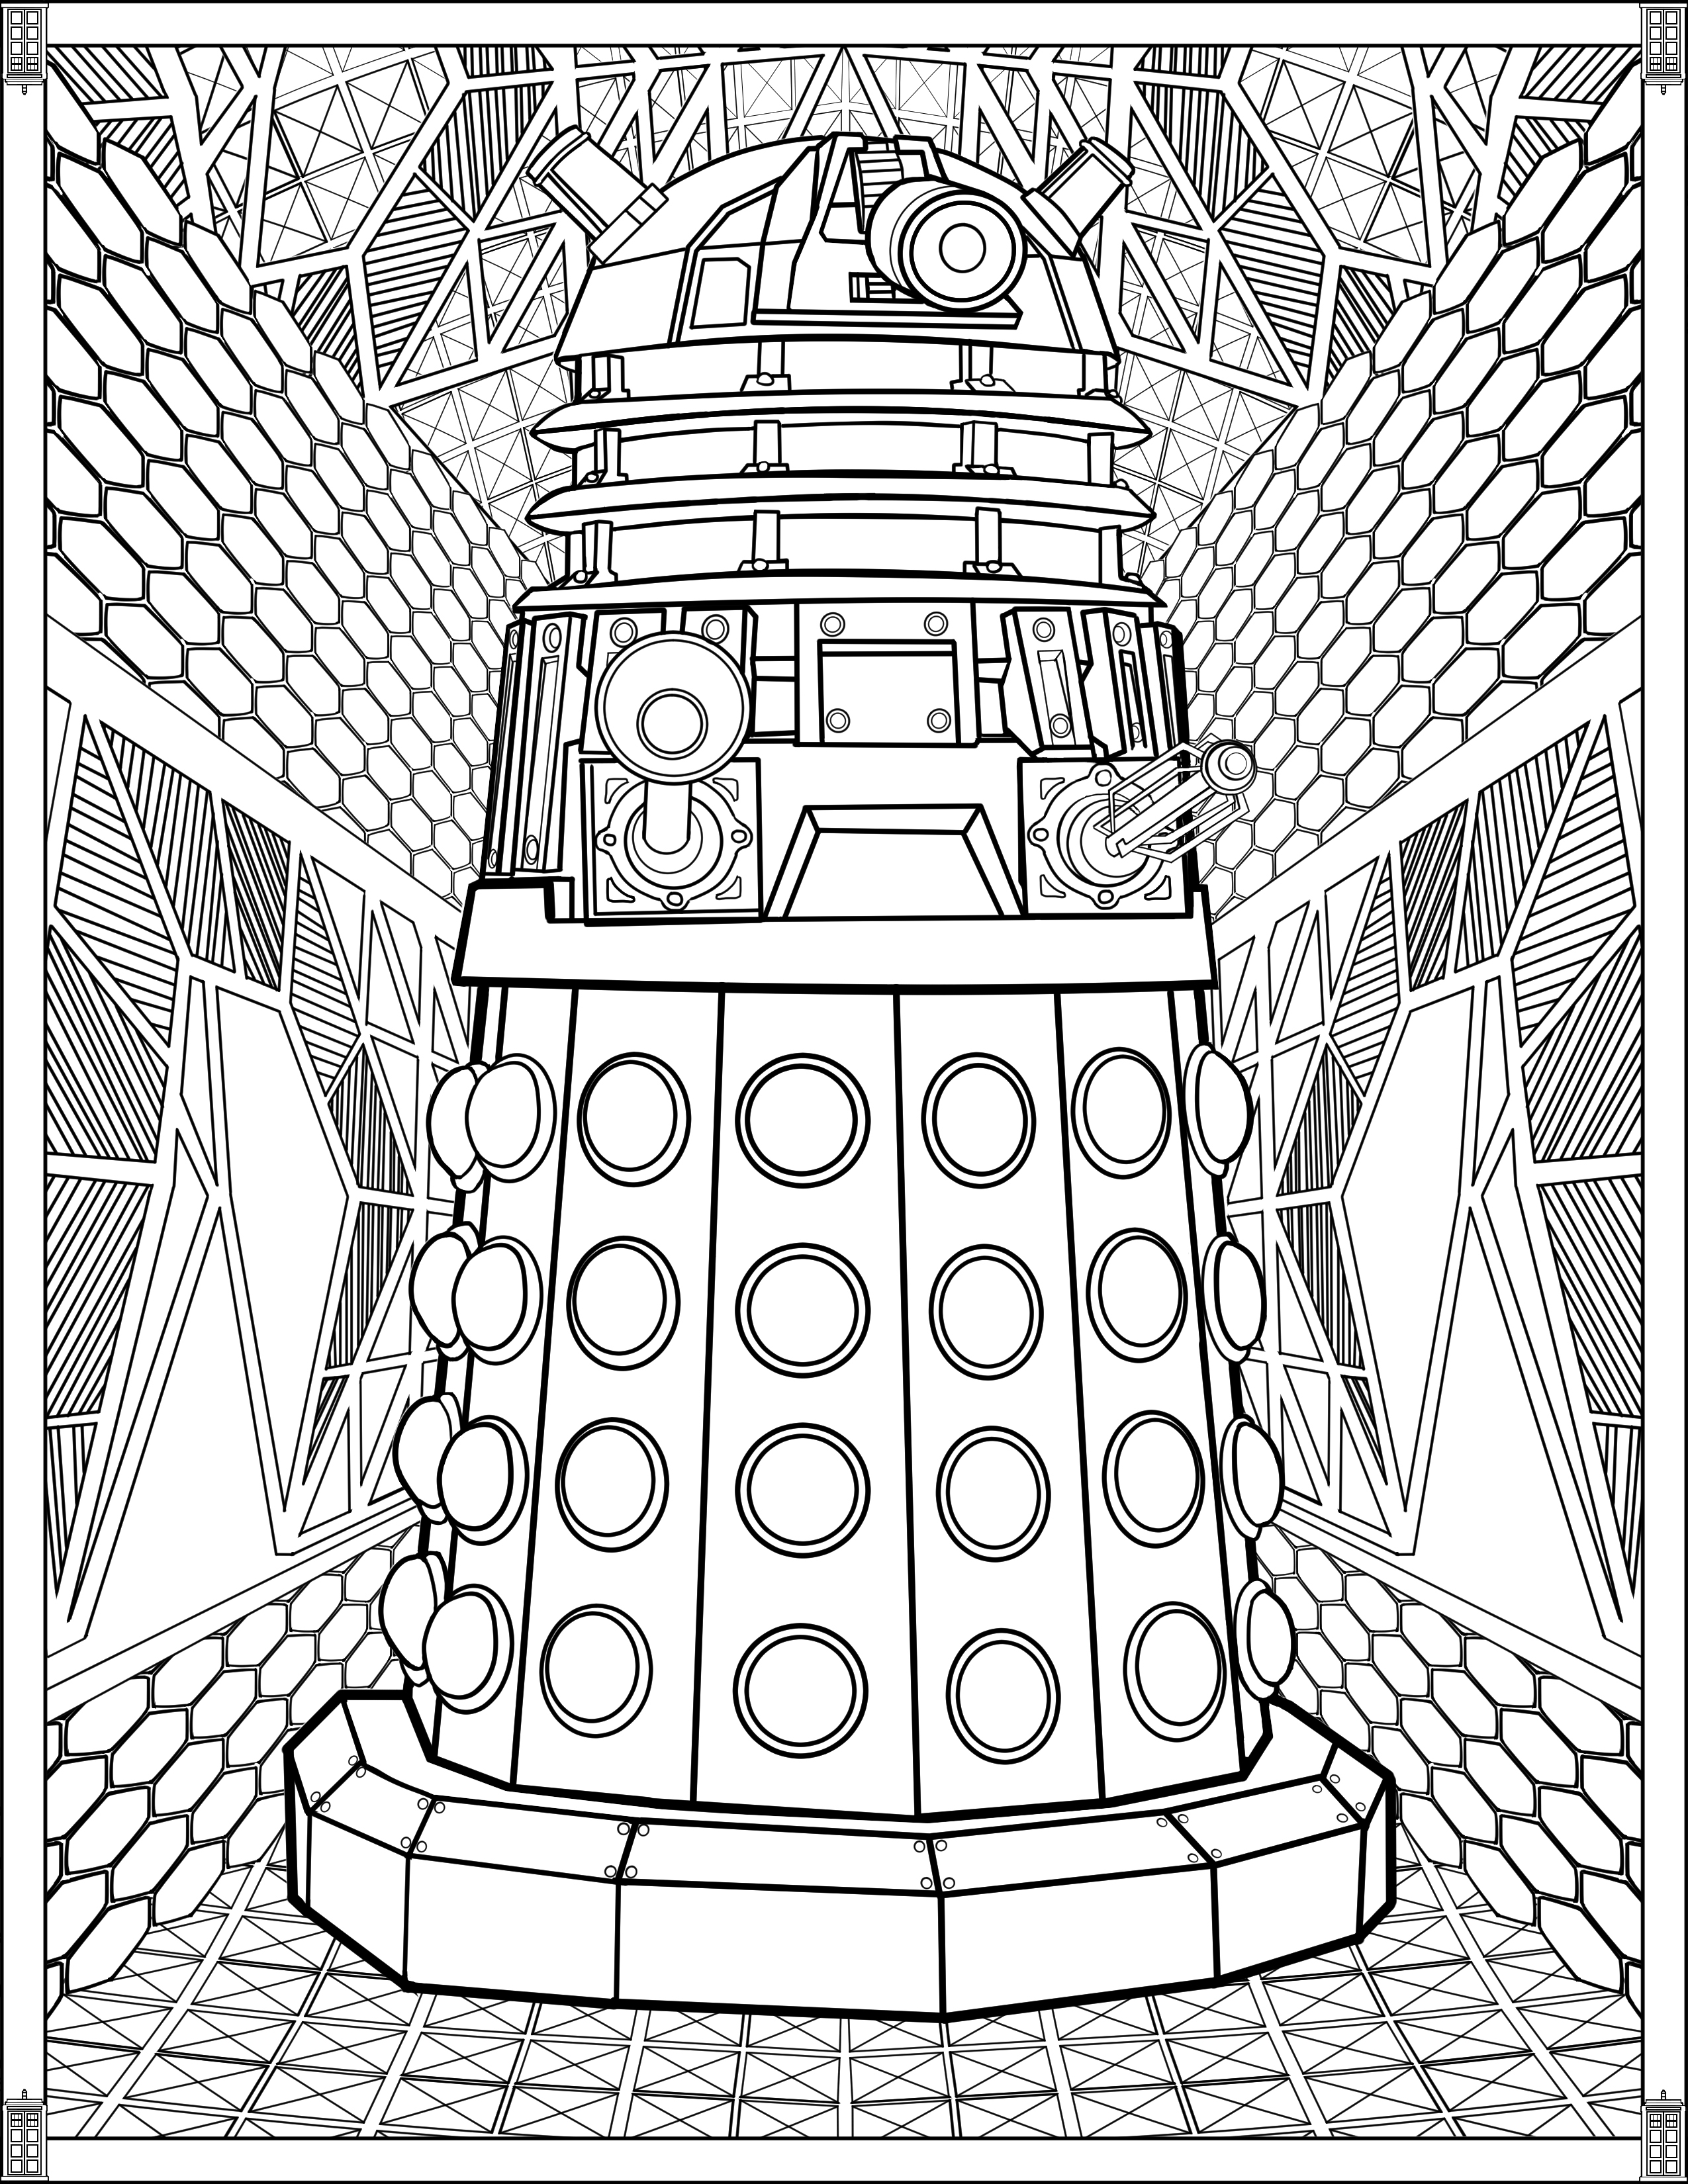 tardis coloring page doctor who wibbly wobbly timey wimey coloring pages printables fun blog tardis page coloring